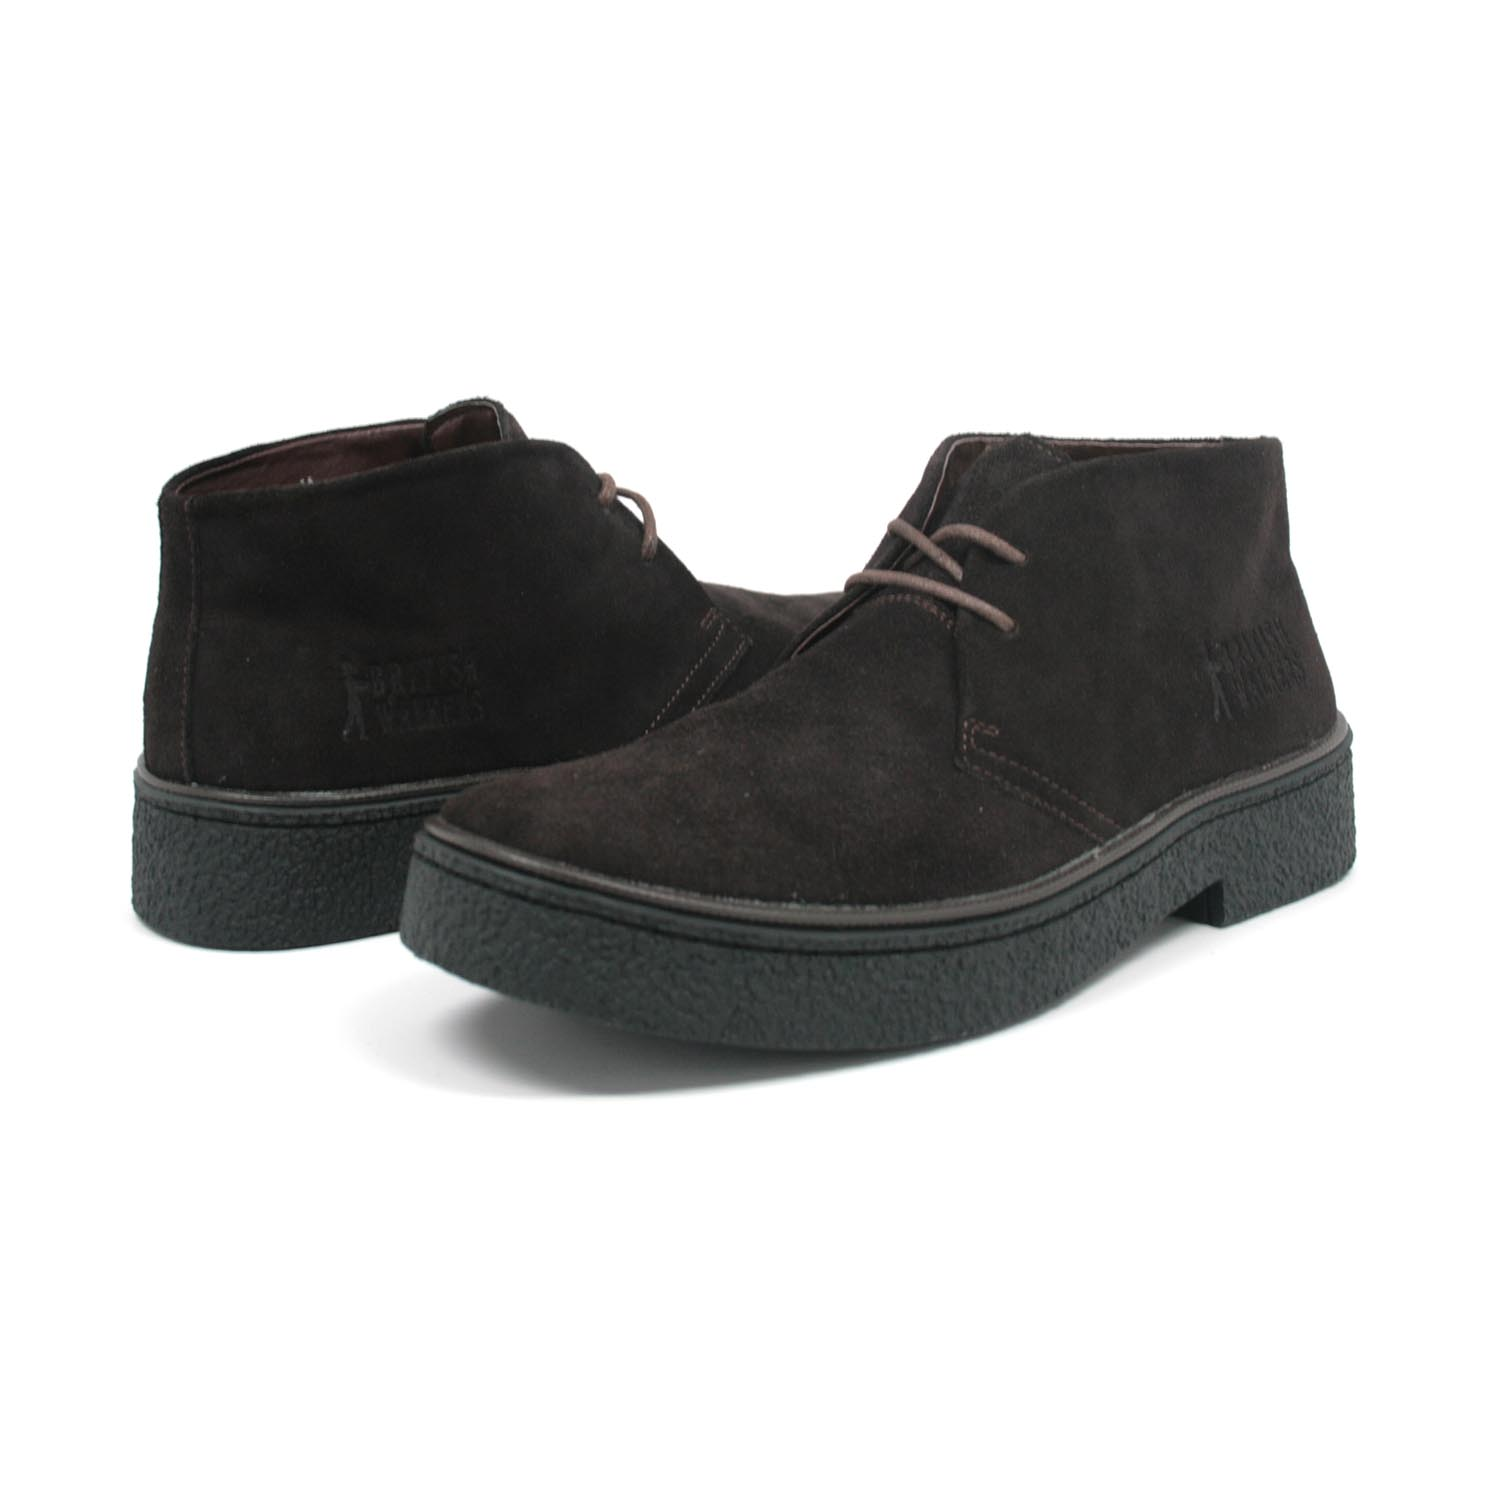 British Collection Men's Playboy Chukka Boot Brown Suede - $99.99 ...